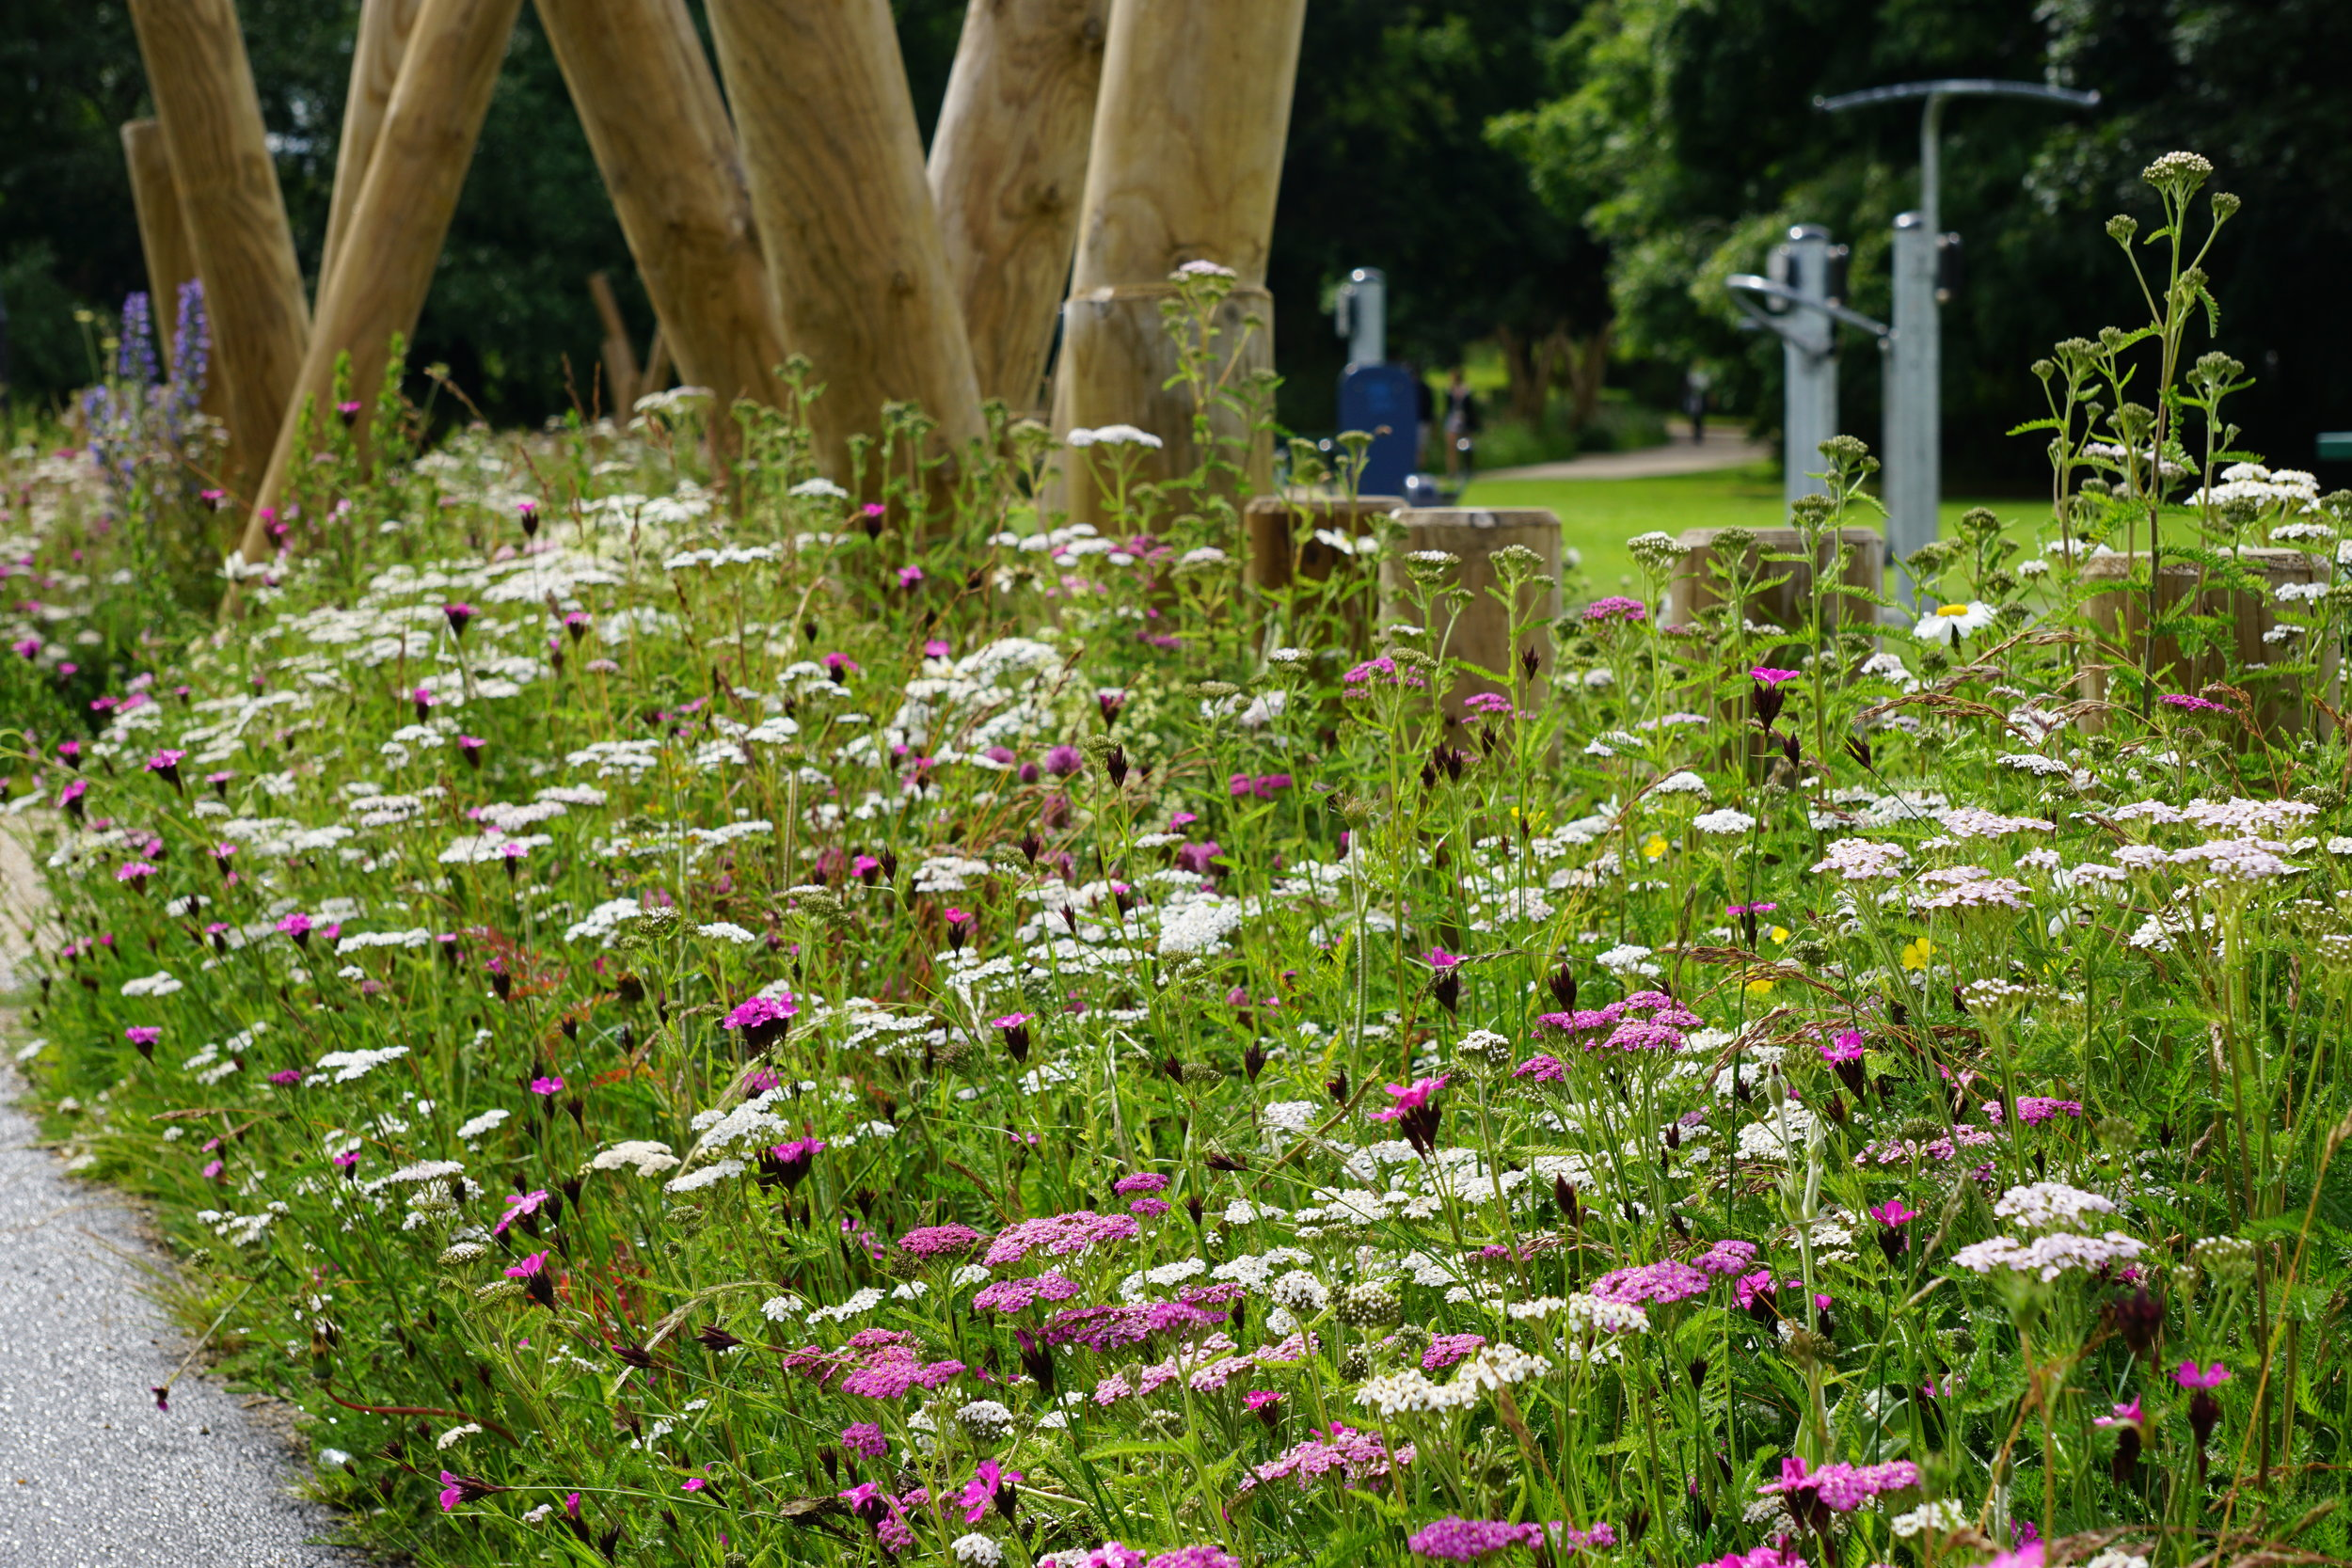 Pictorial Meadows planting in a park .JPG